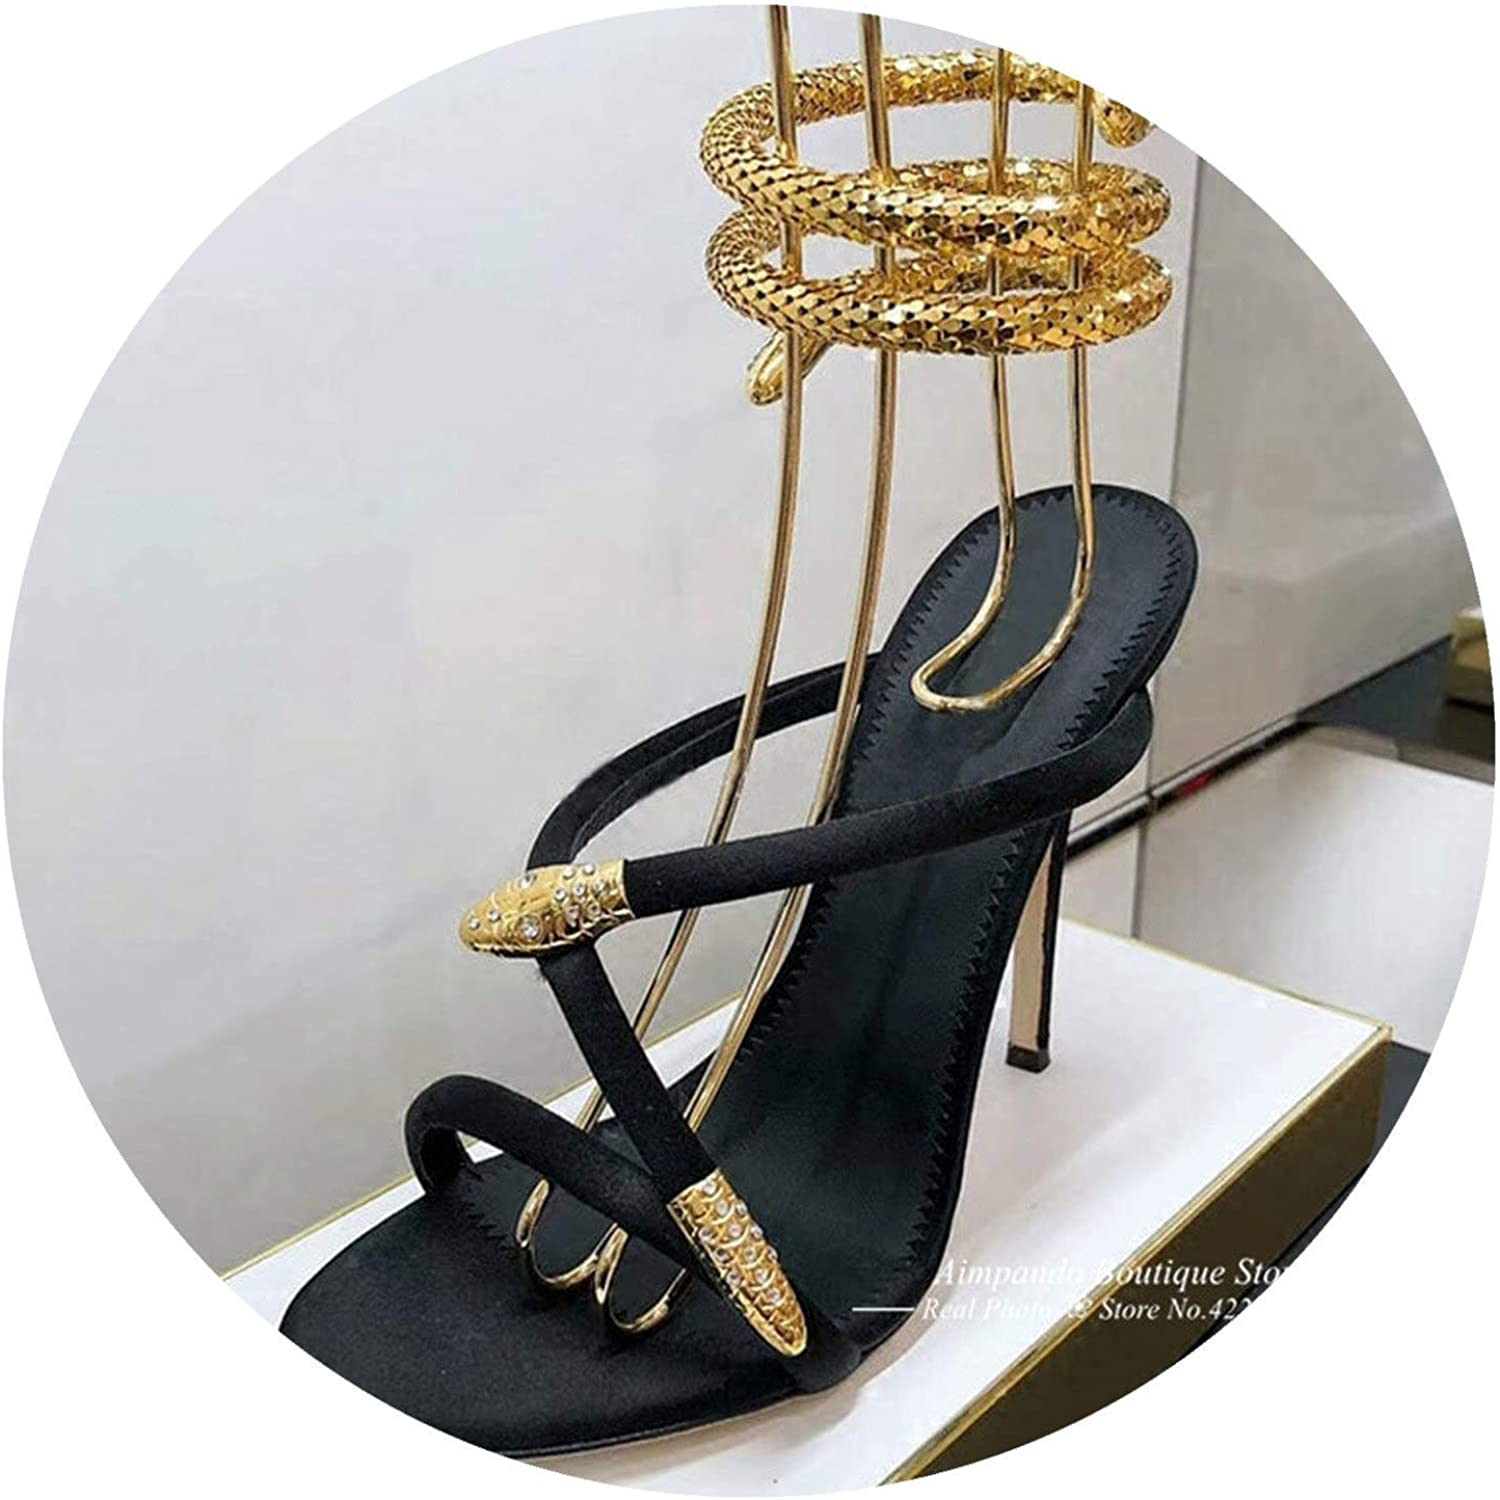 gold Snake Ankle Strap Gladiator Sandals Woman Open Toe High Heel shoes Party shoes